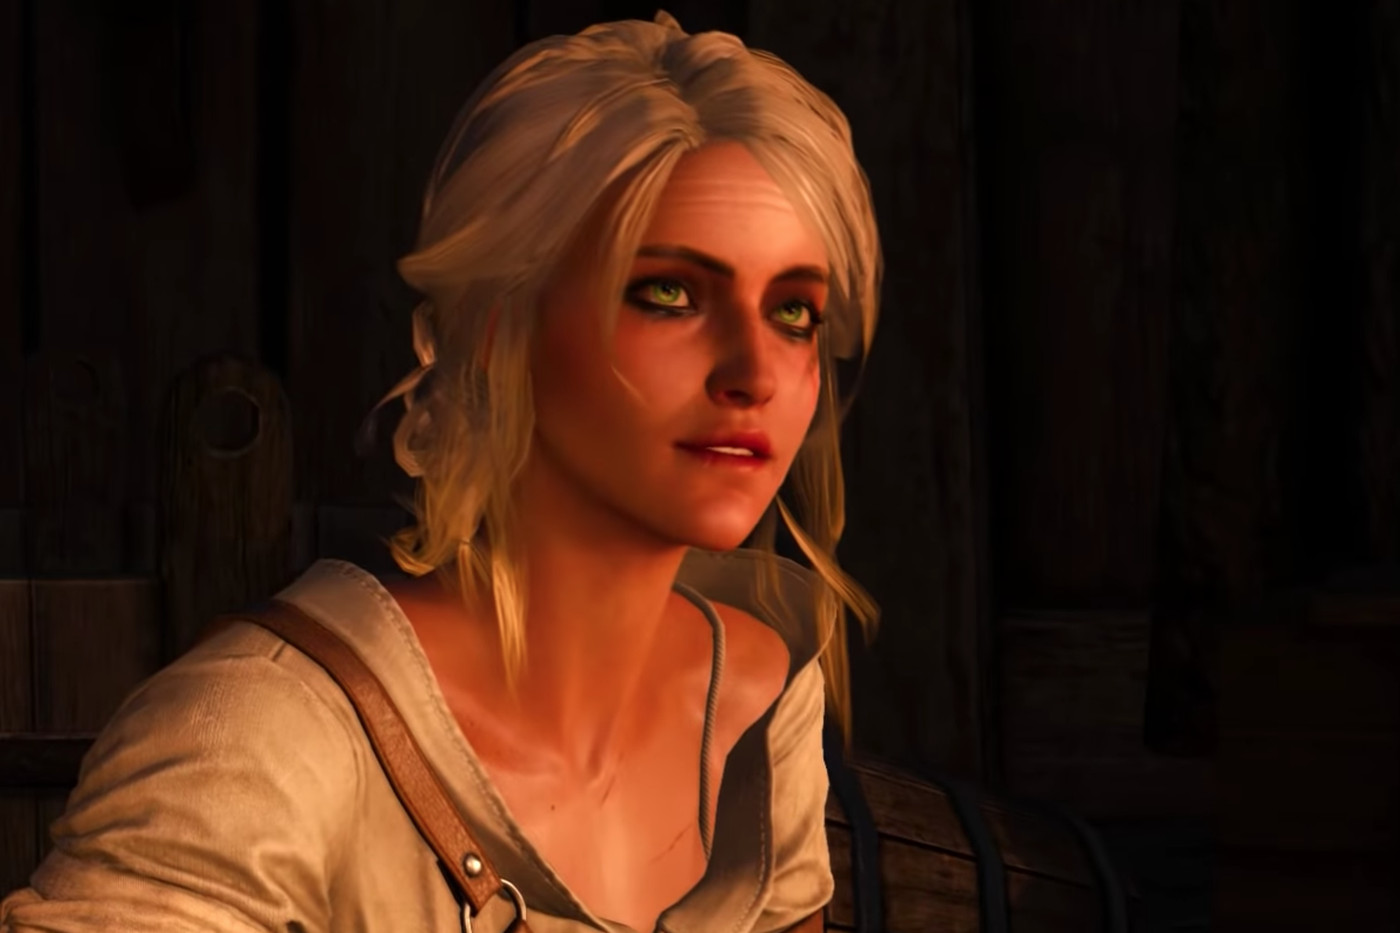 Cyberpunk Dev Would Appreciate If You D Stop Asking About The Witcher S Ciri Please Polygon